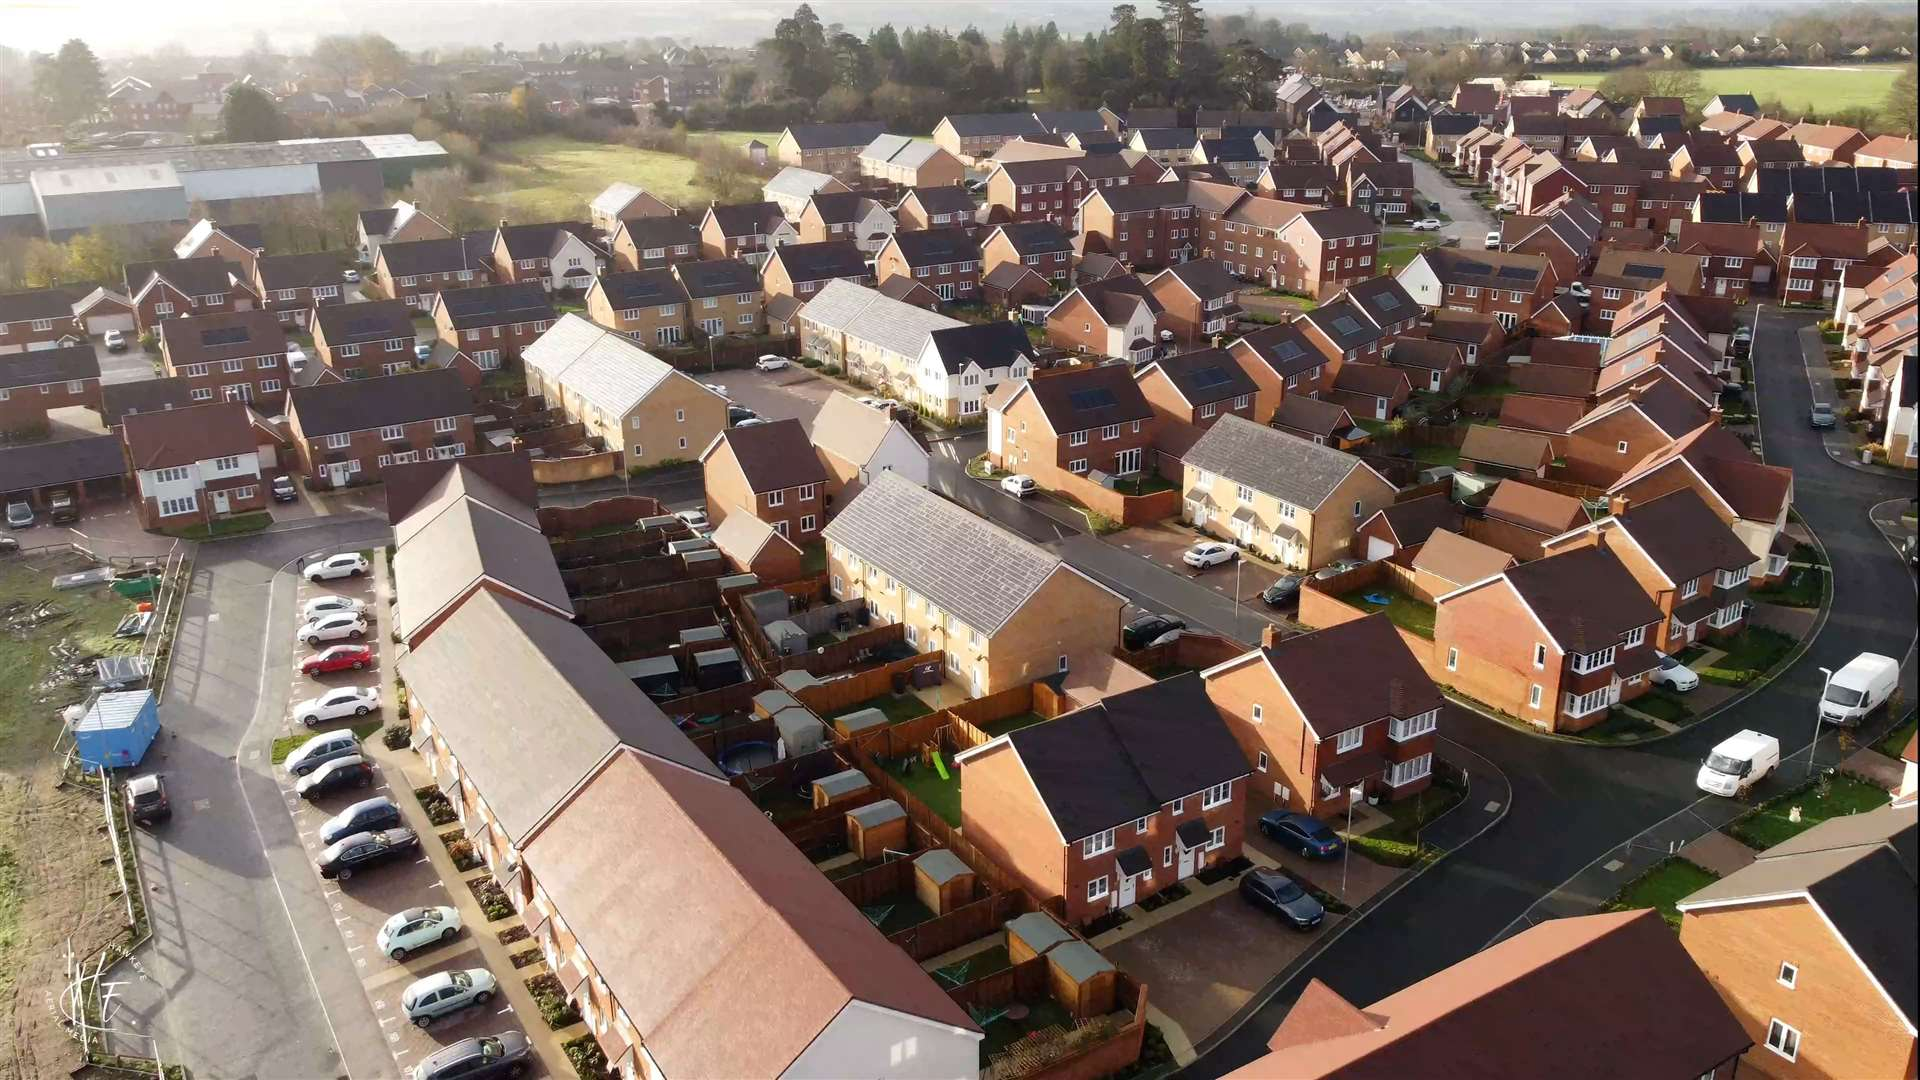 New homes in Barming near Maidstone. Picture: HawkEye Aerial Media